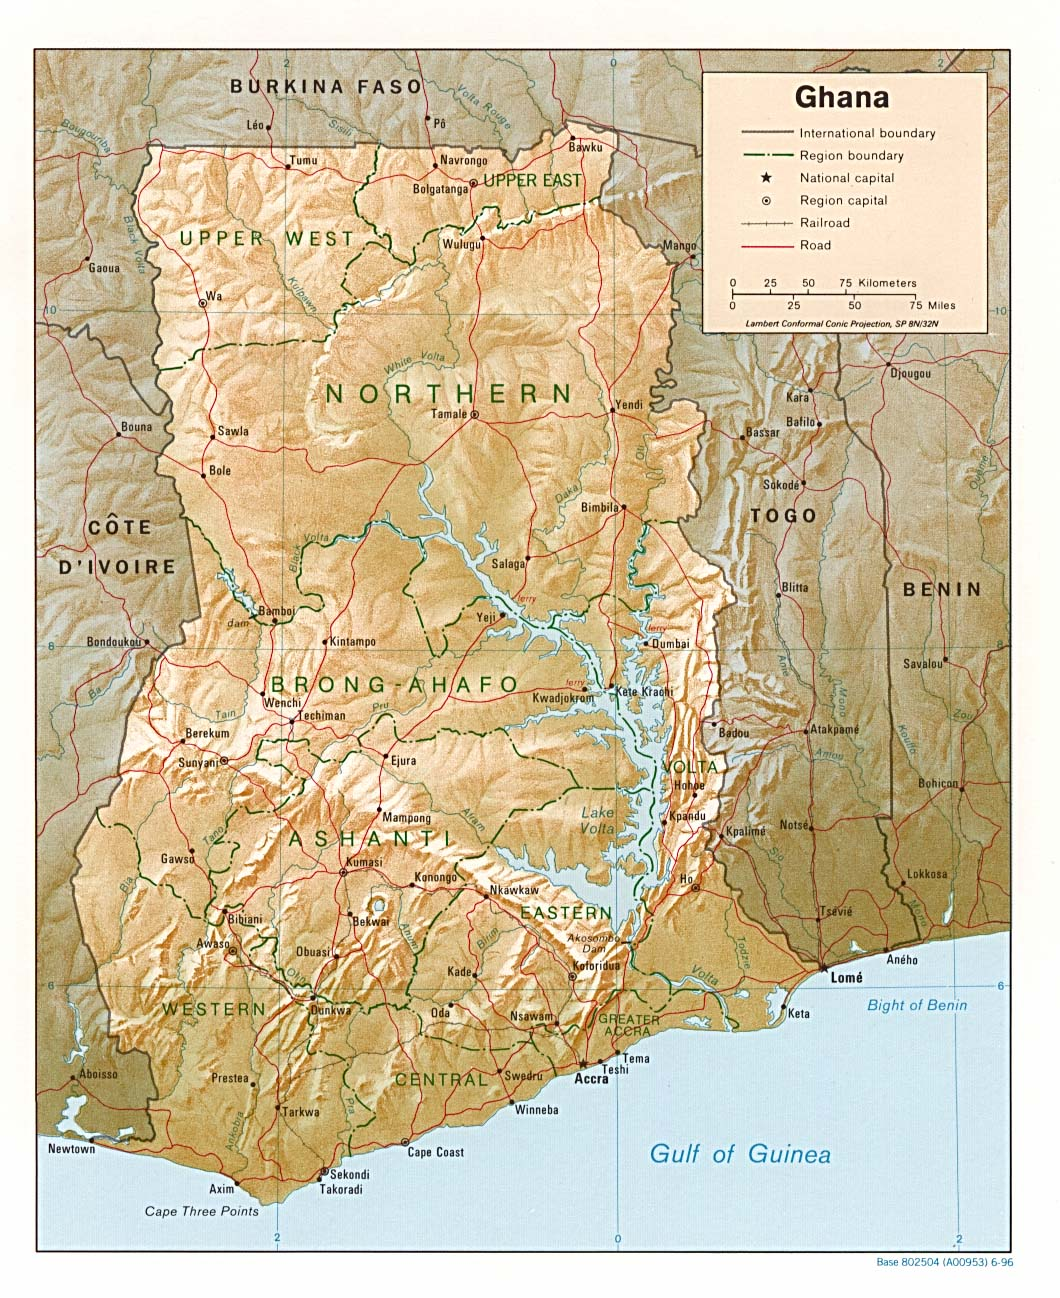 Mapa de Relieve Sombreado de Ghana